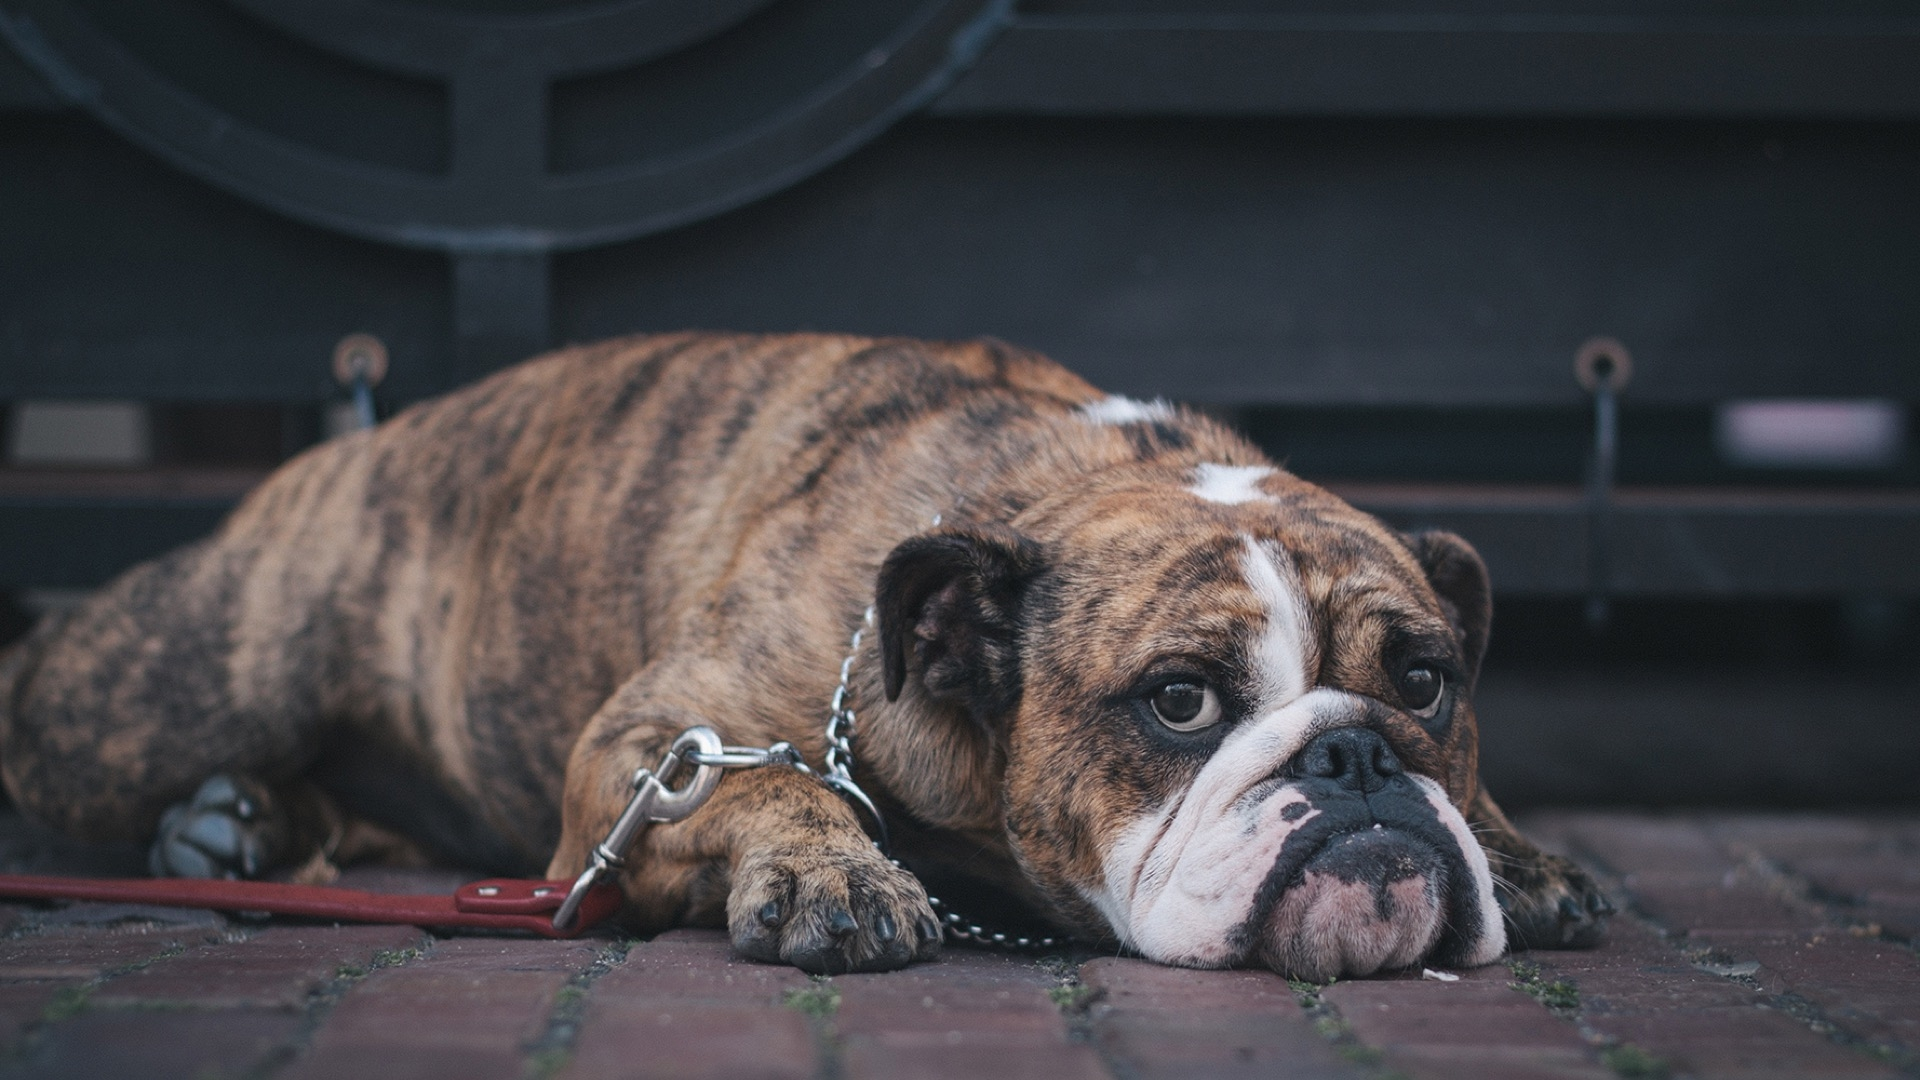 bulldog chained up